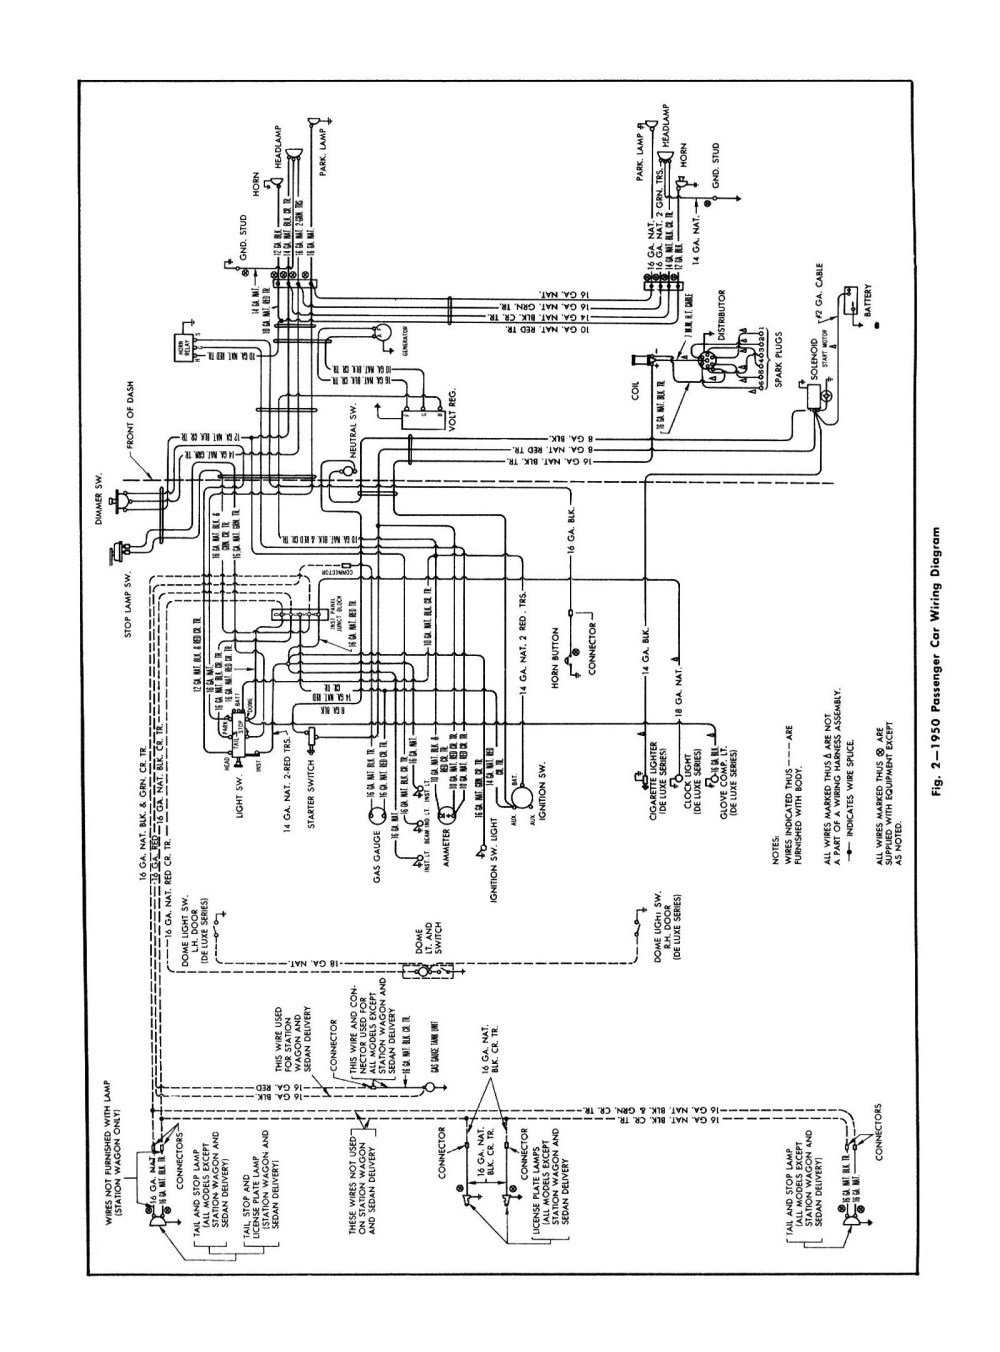 medium resolution of case ih 7140 wiring schematic ford f150 headlight assembly diagram awesome 1950 ford wiring schematic